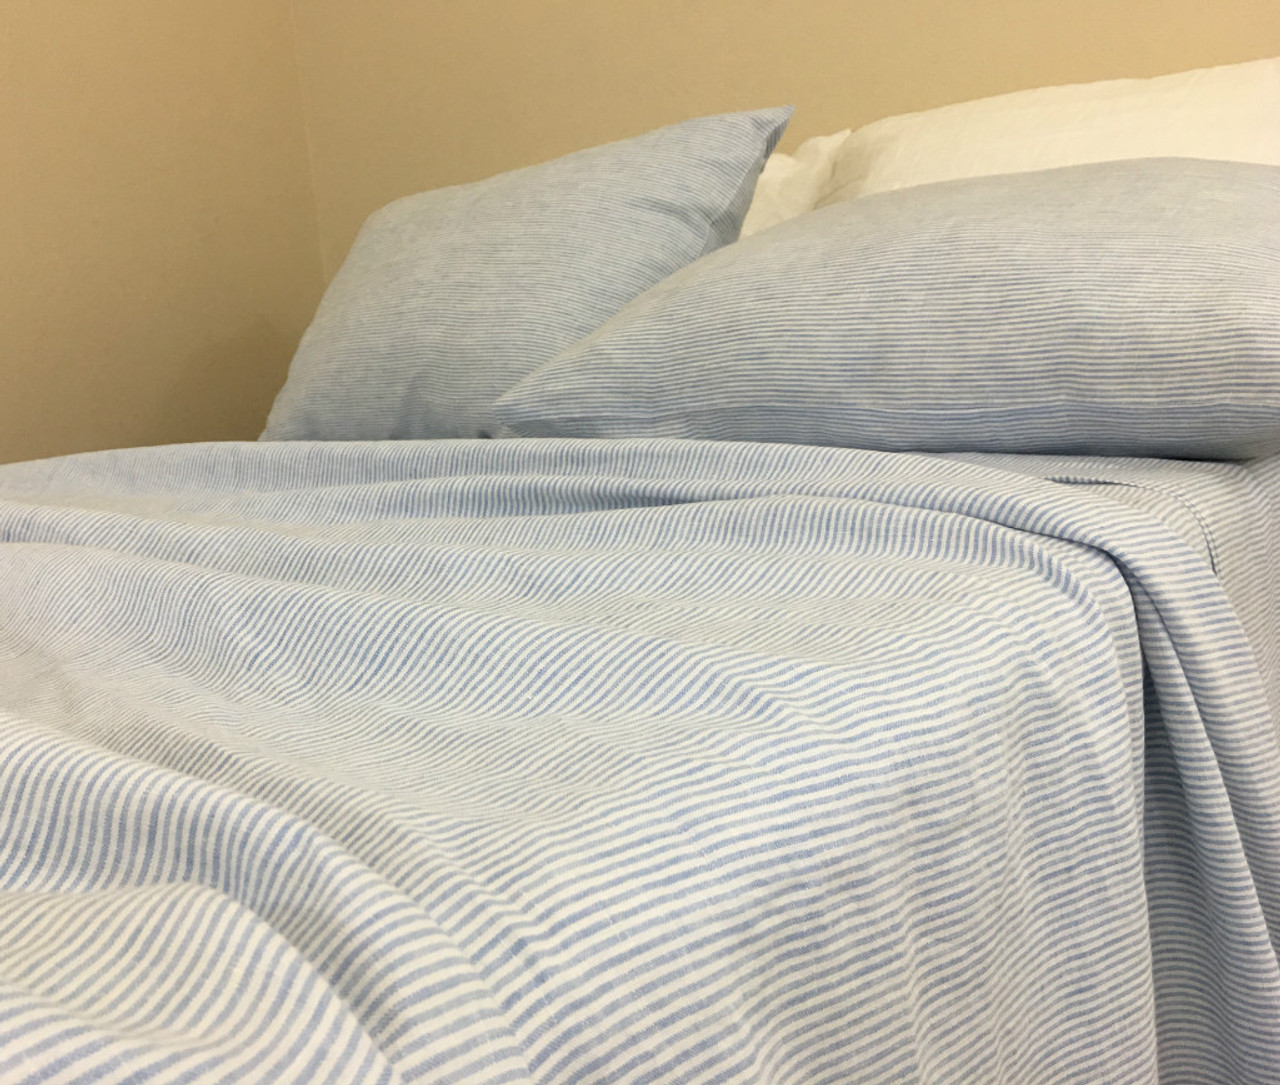 Blue And White Ticking Striped Bed Sheets Set Crafted From Butter Soft Prewashed Linens